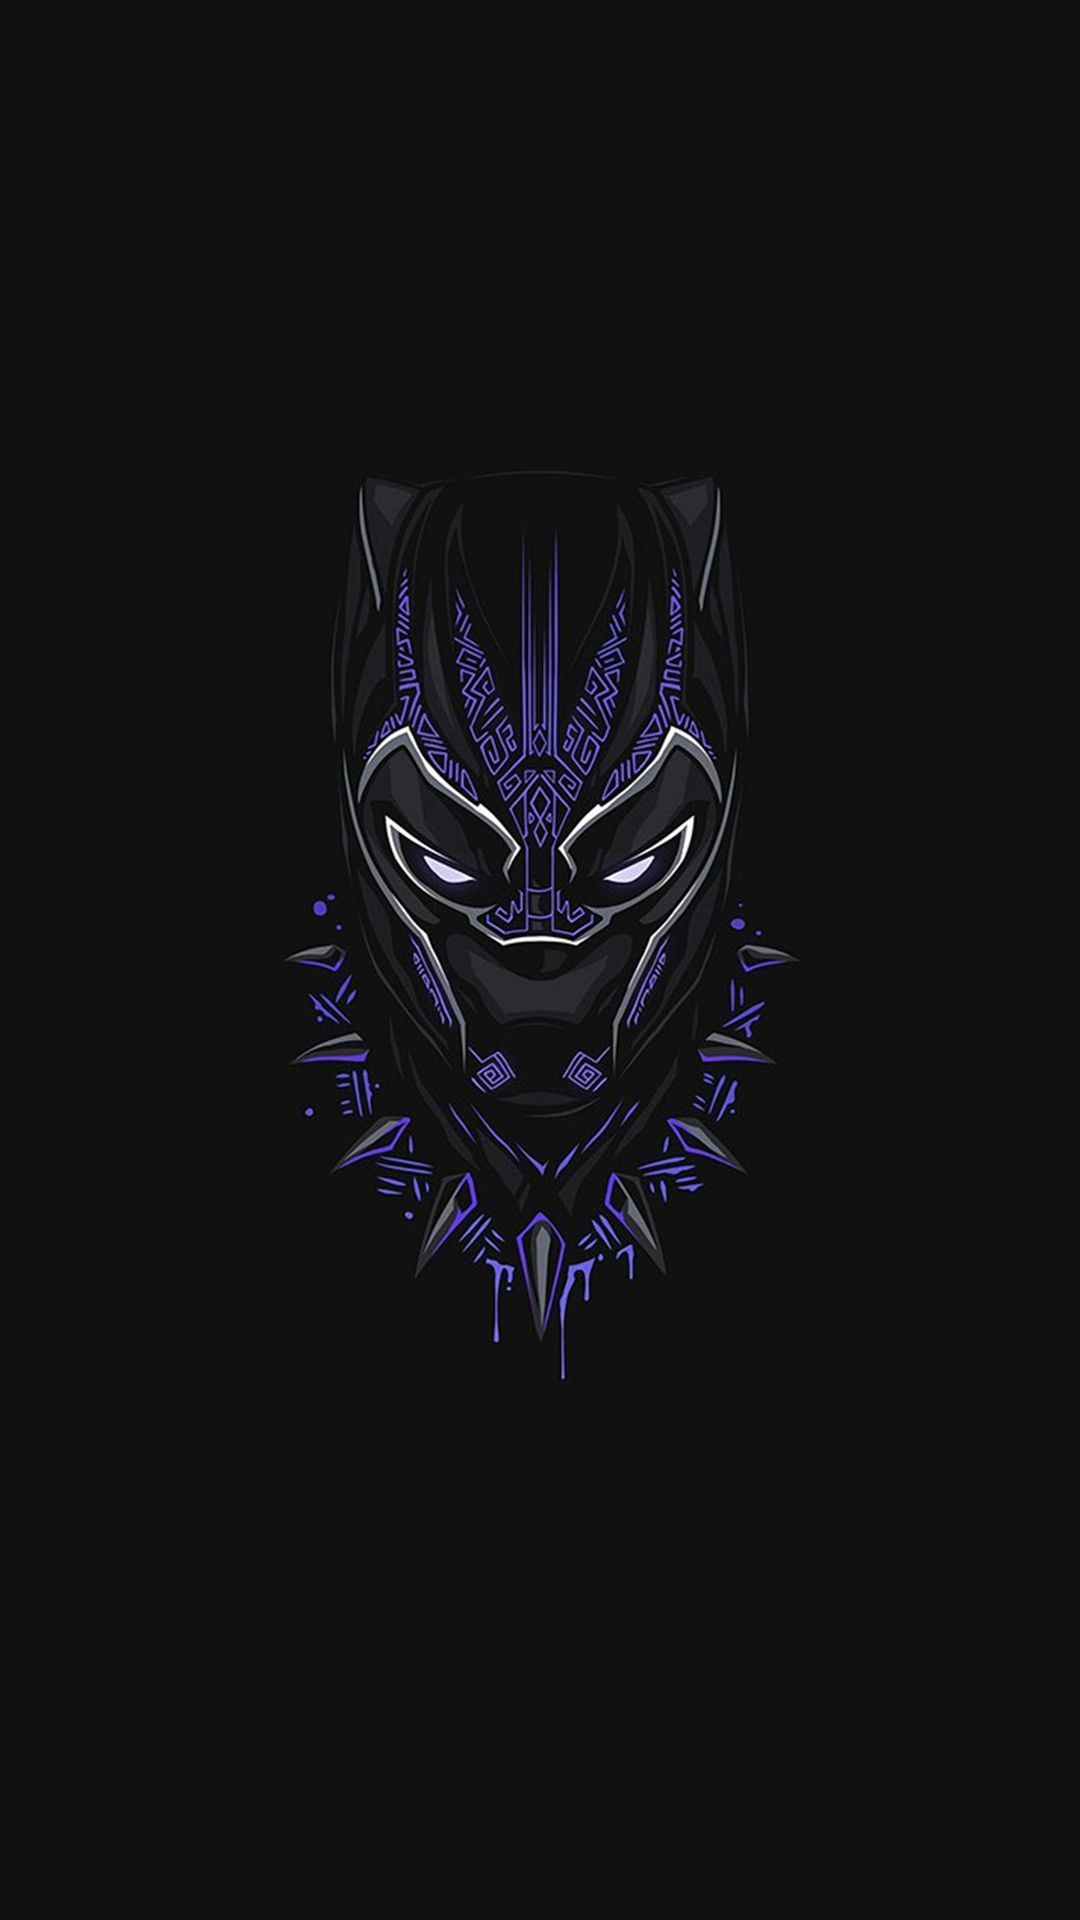 Avengers Neon Thanos Iphone Wallpaper Iphone Wallpapers Black Panther Marvel Marvel Wallpaper Avengers Wallpaper